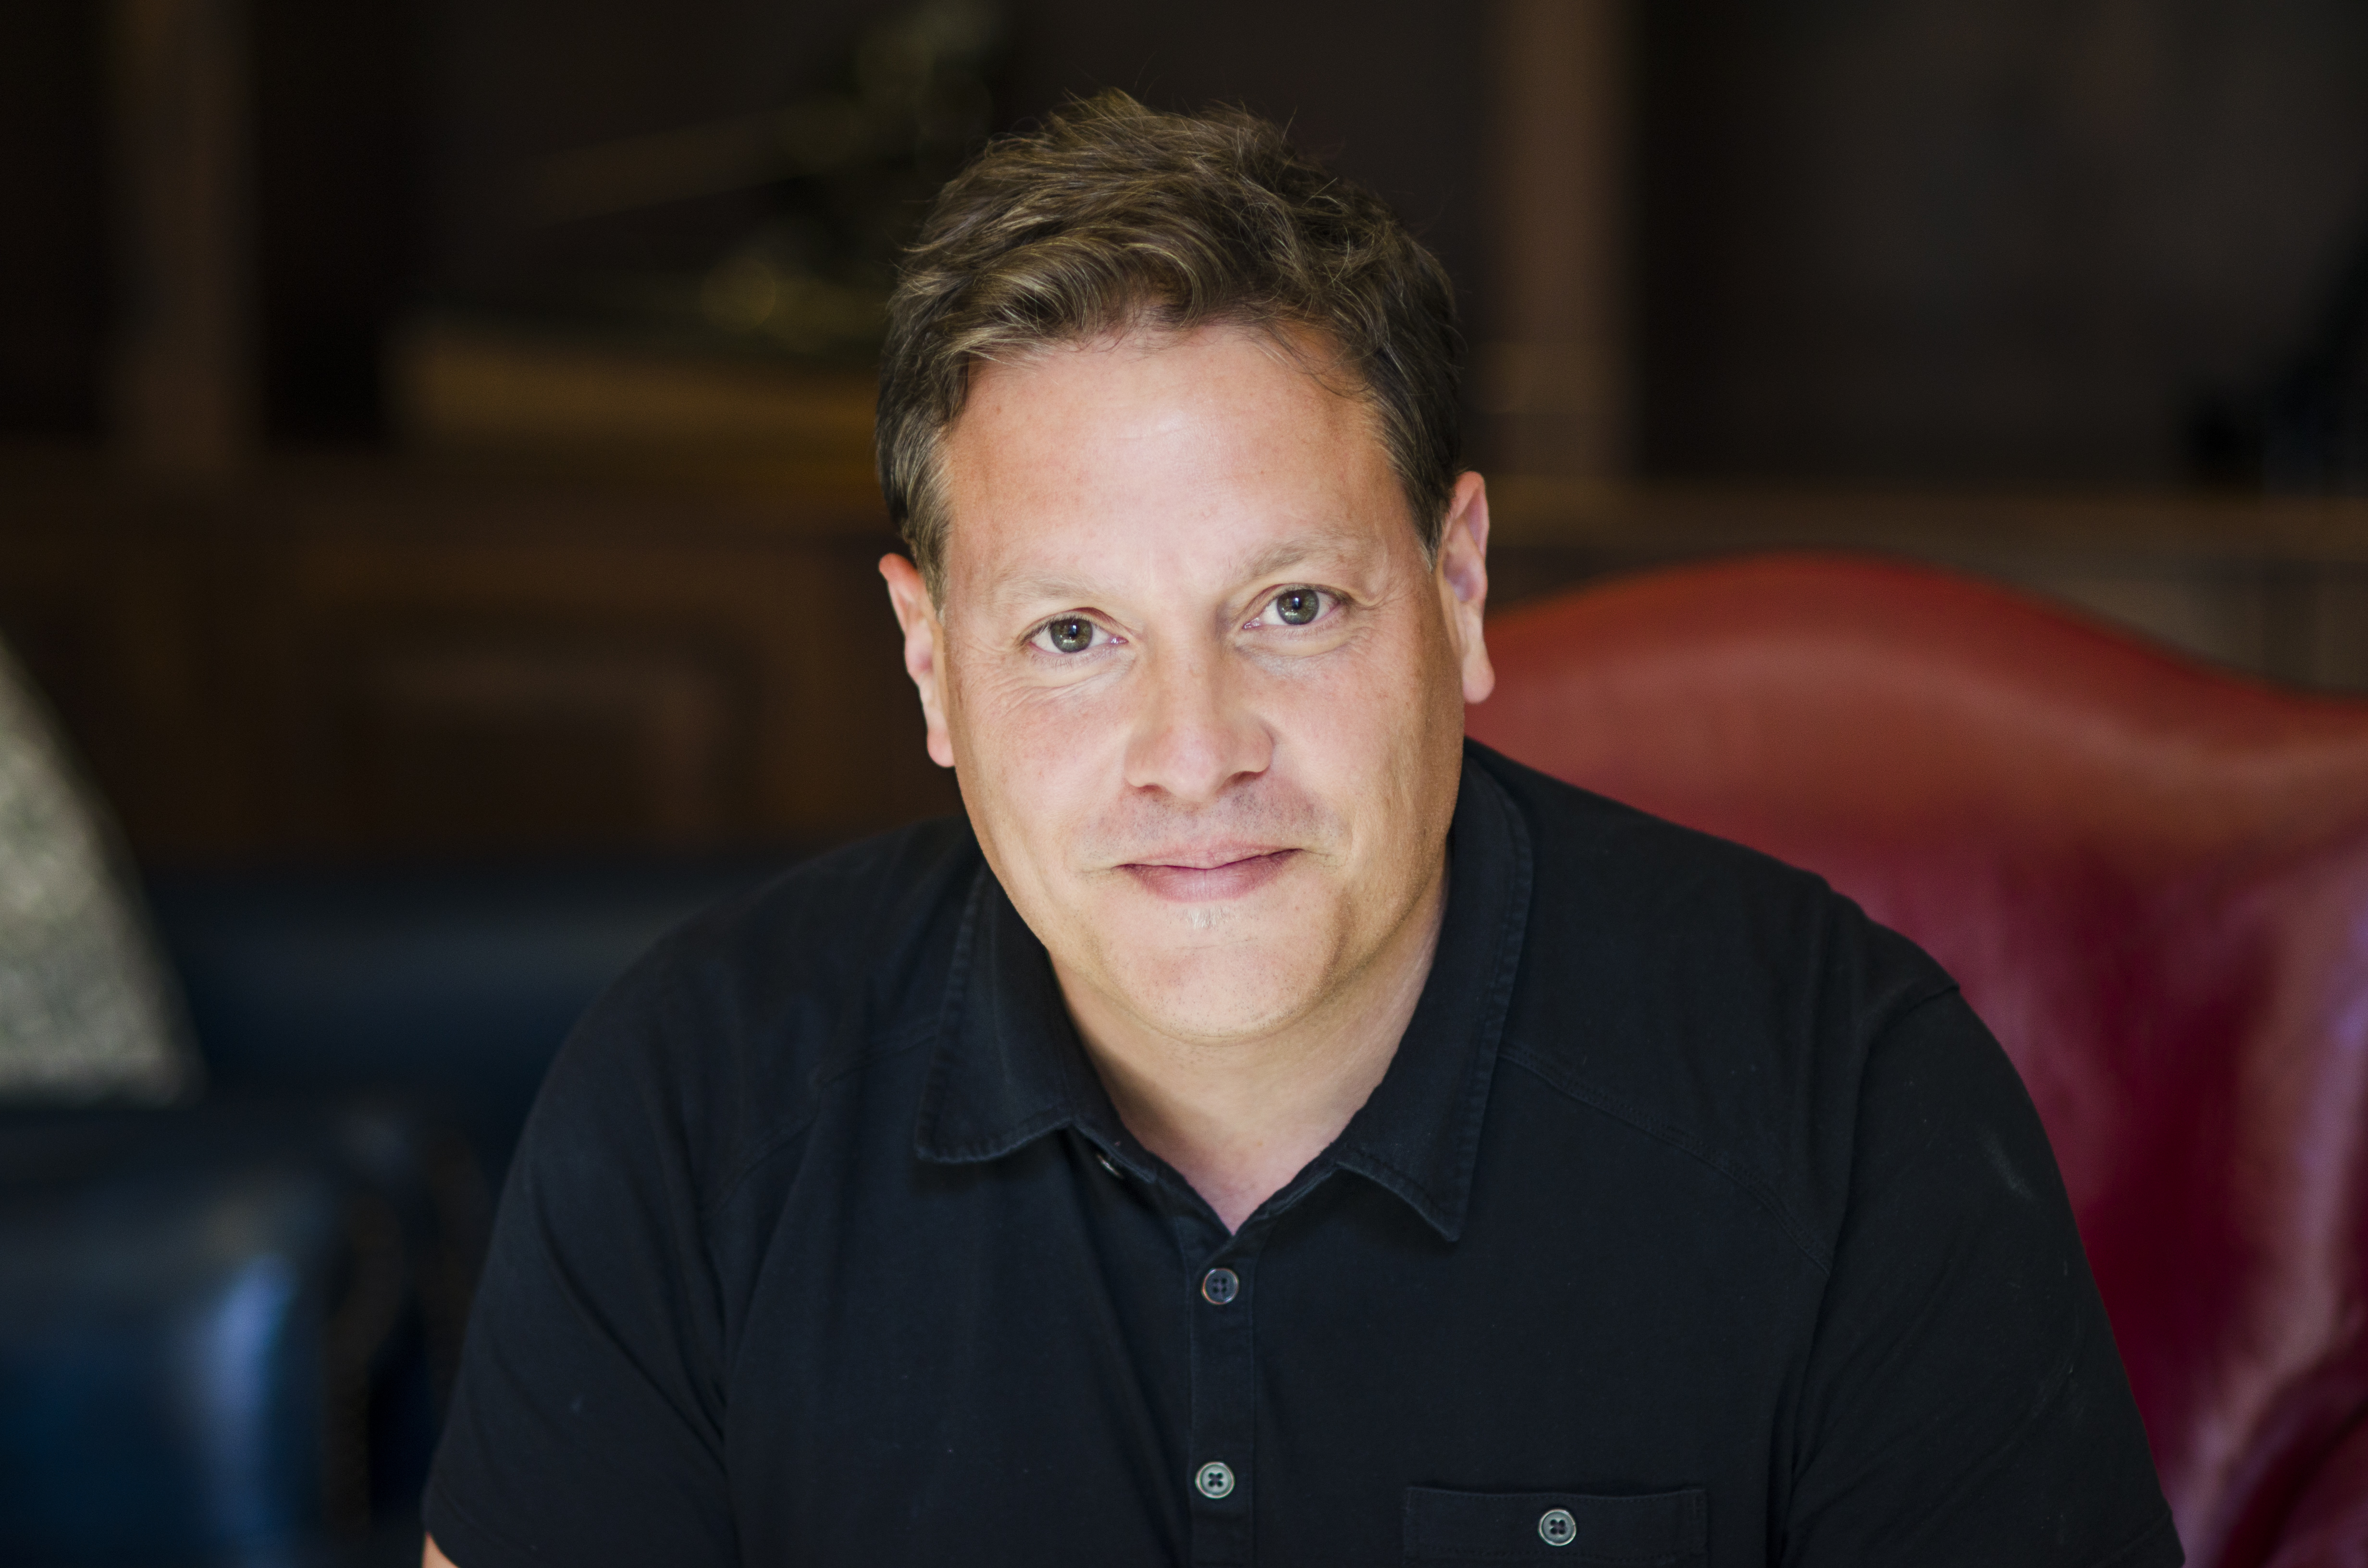 Sosh Completes Reorganization to Support Scalability & Hires New Company President